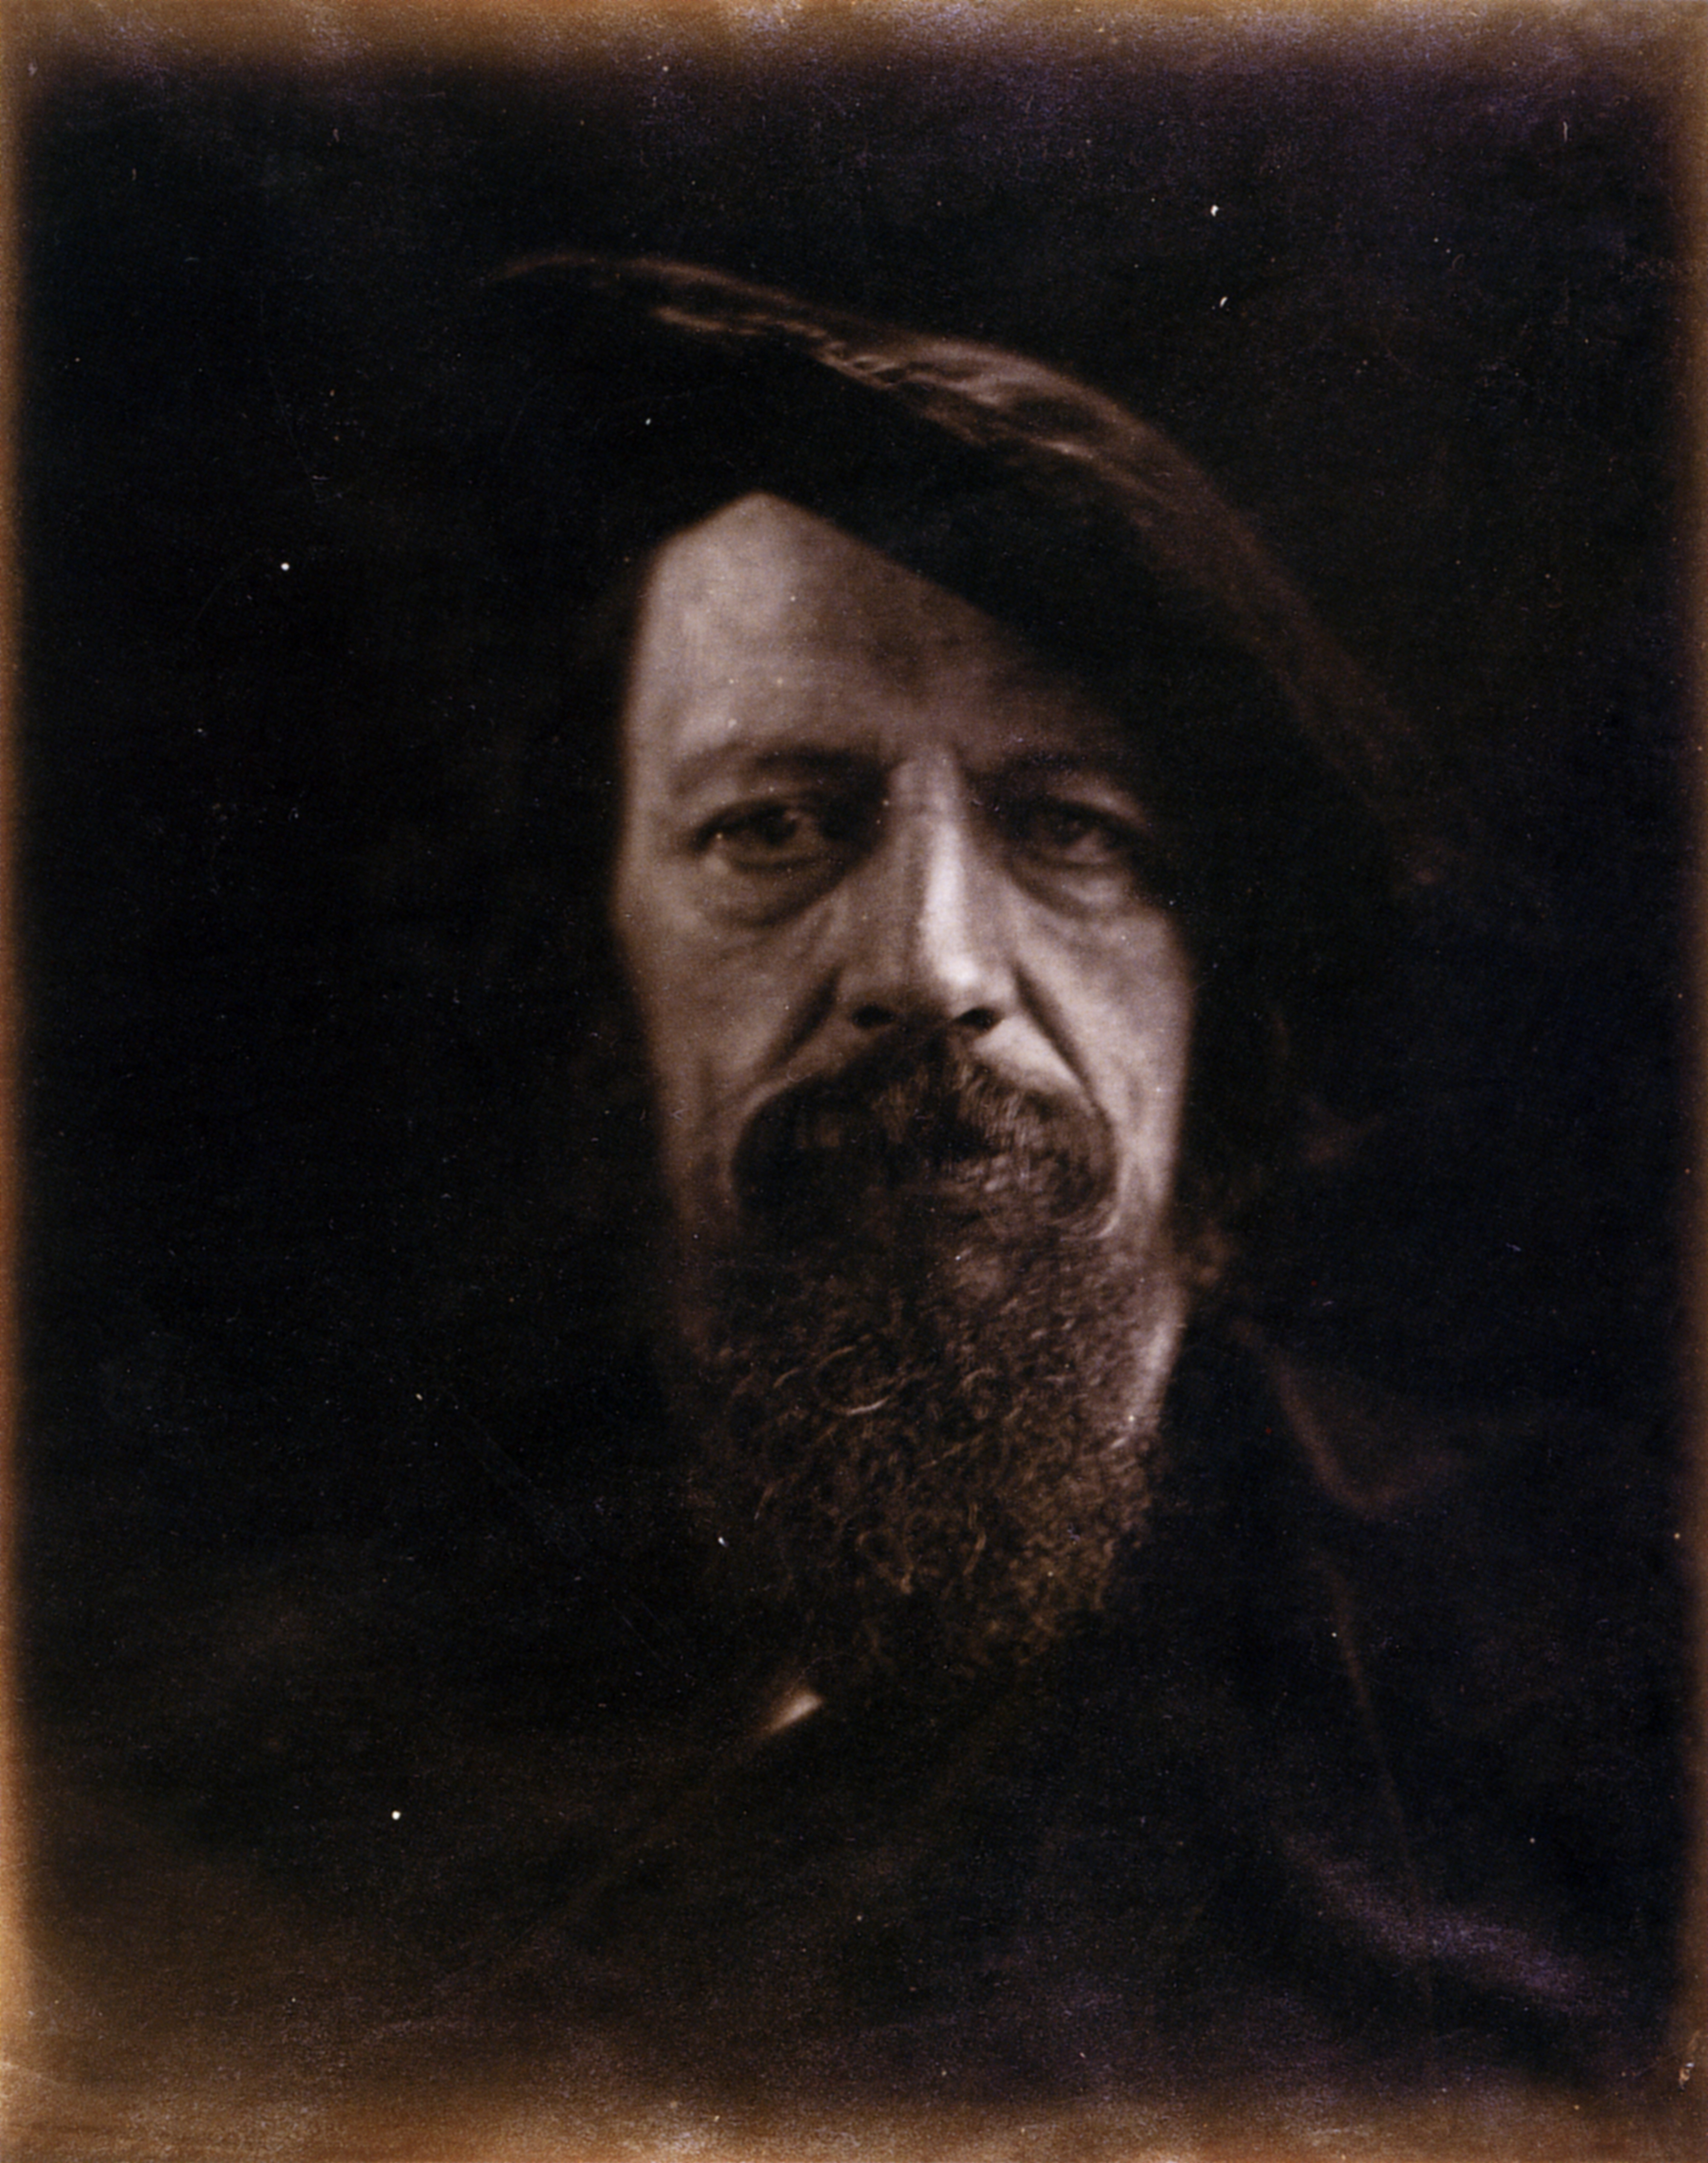 alfred lord tennyson essay The light brigade by alfred lord tennyson english literature essay print this to kipling's attack on laureate tennyson's poem for general lord cardigan) for.